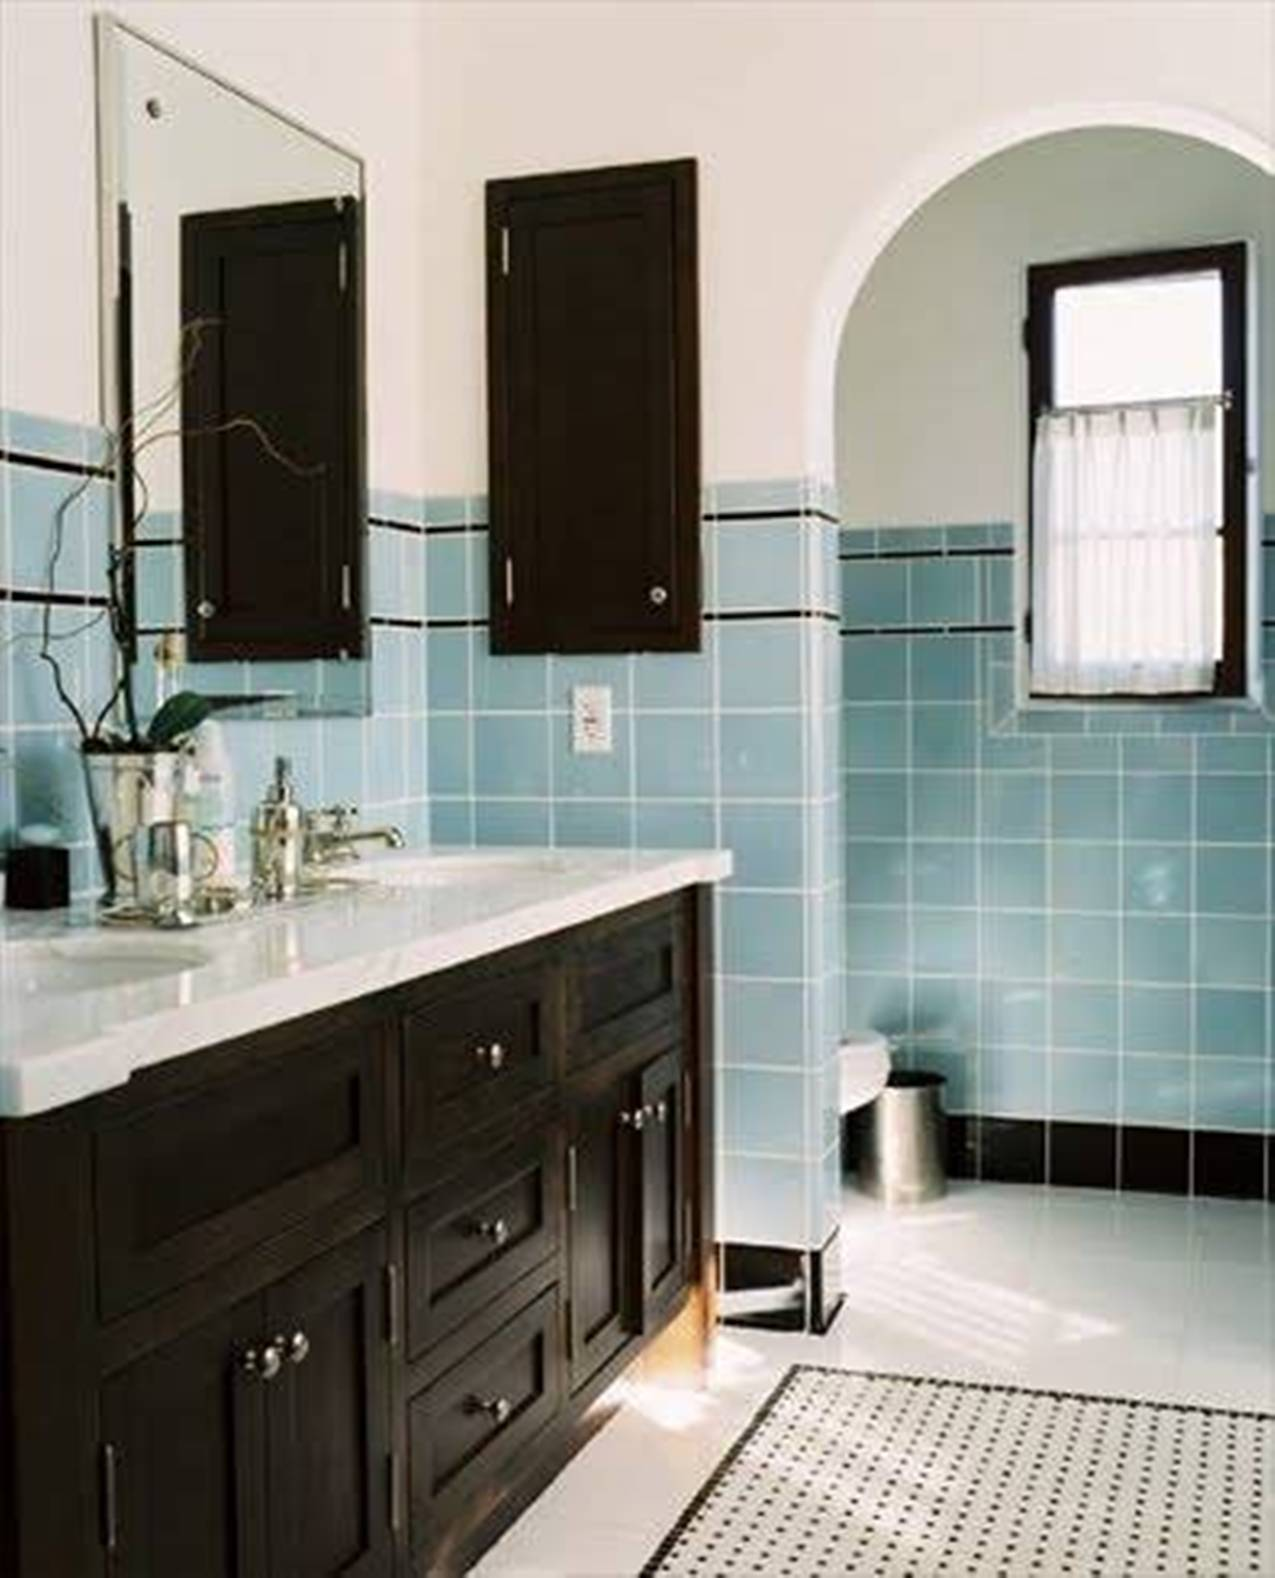 45 magnificent pictures of retro bathroom tile design ideas for Black tile bathroom designs